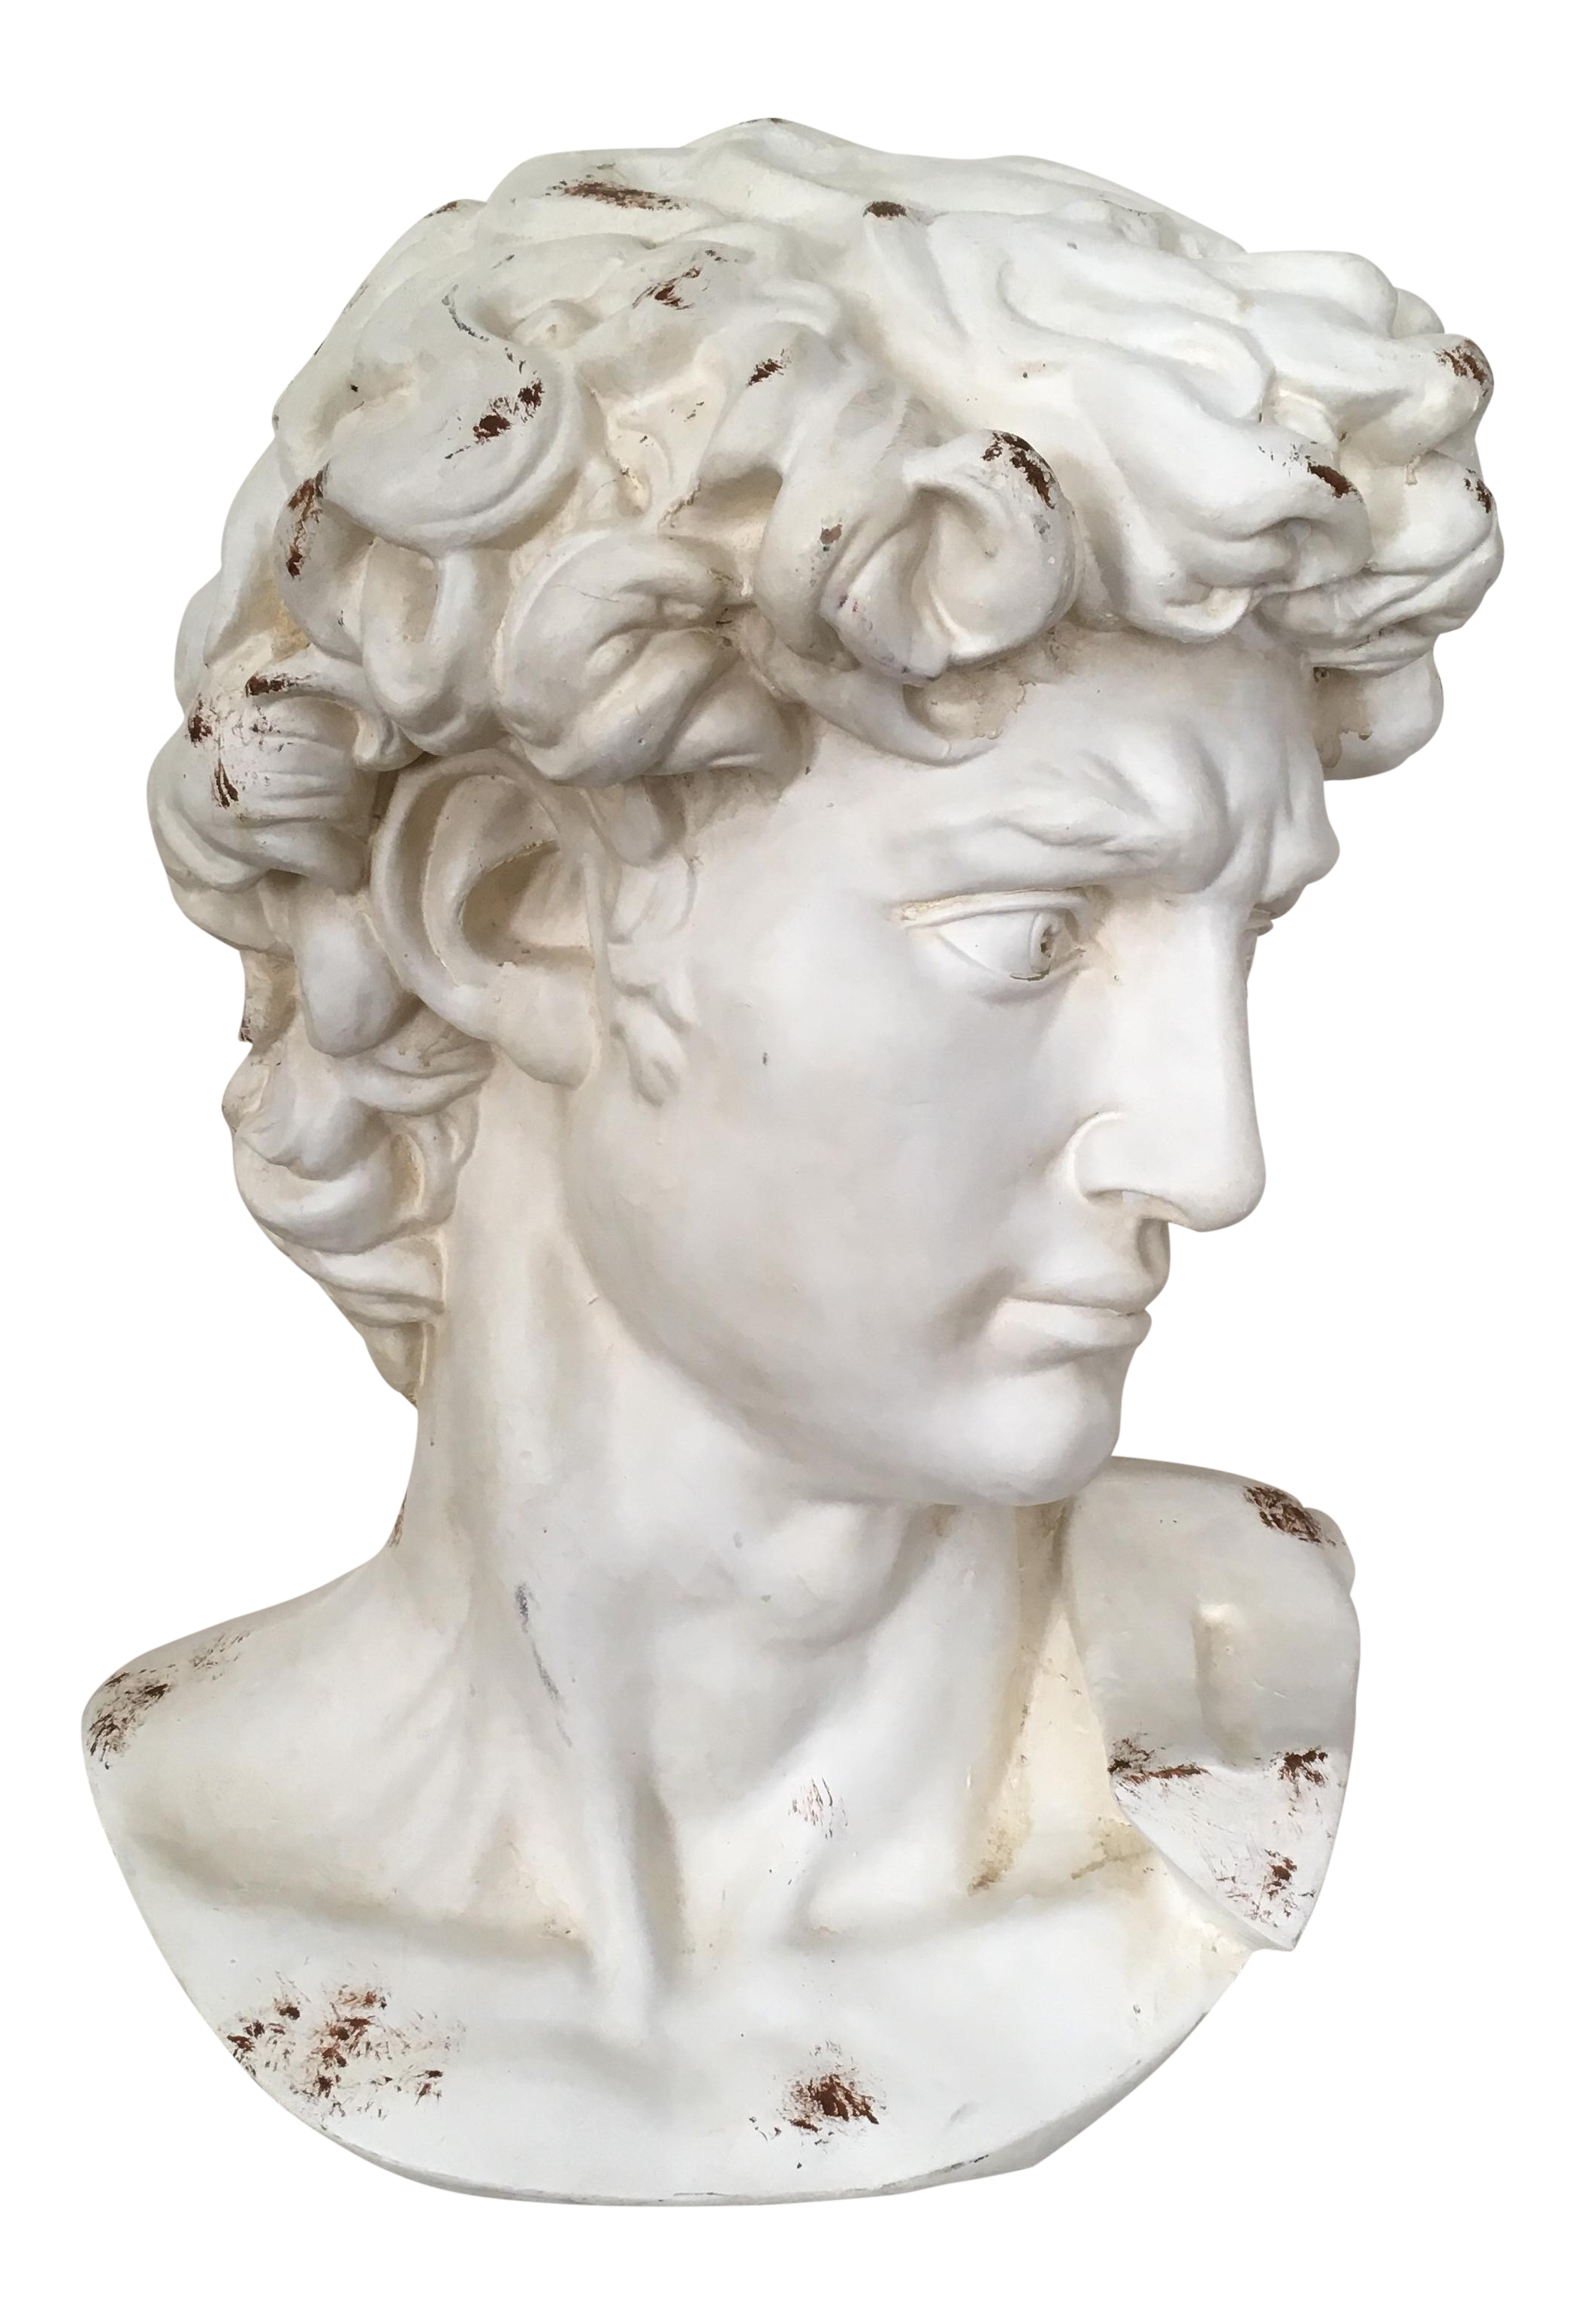 Statue of david png. Plaster bust chairish